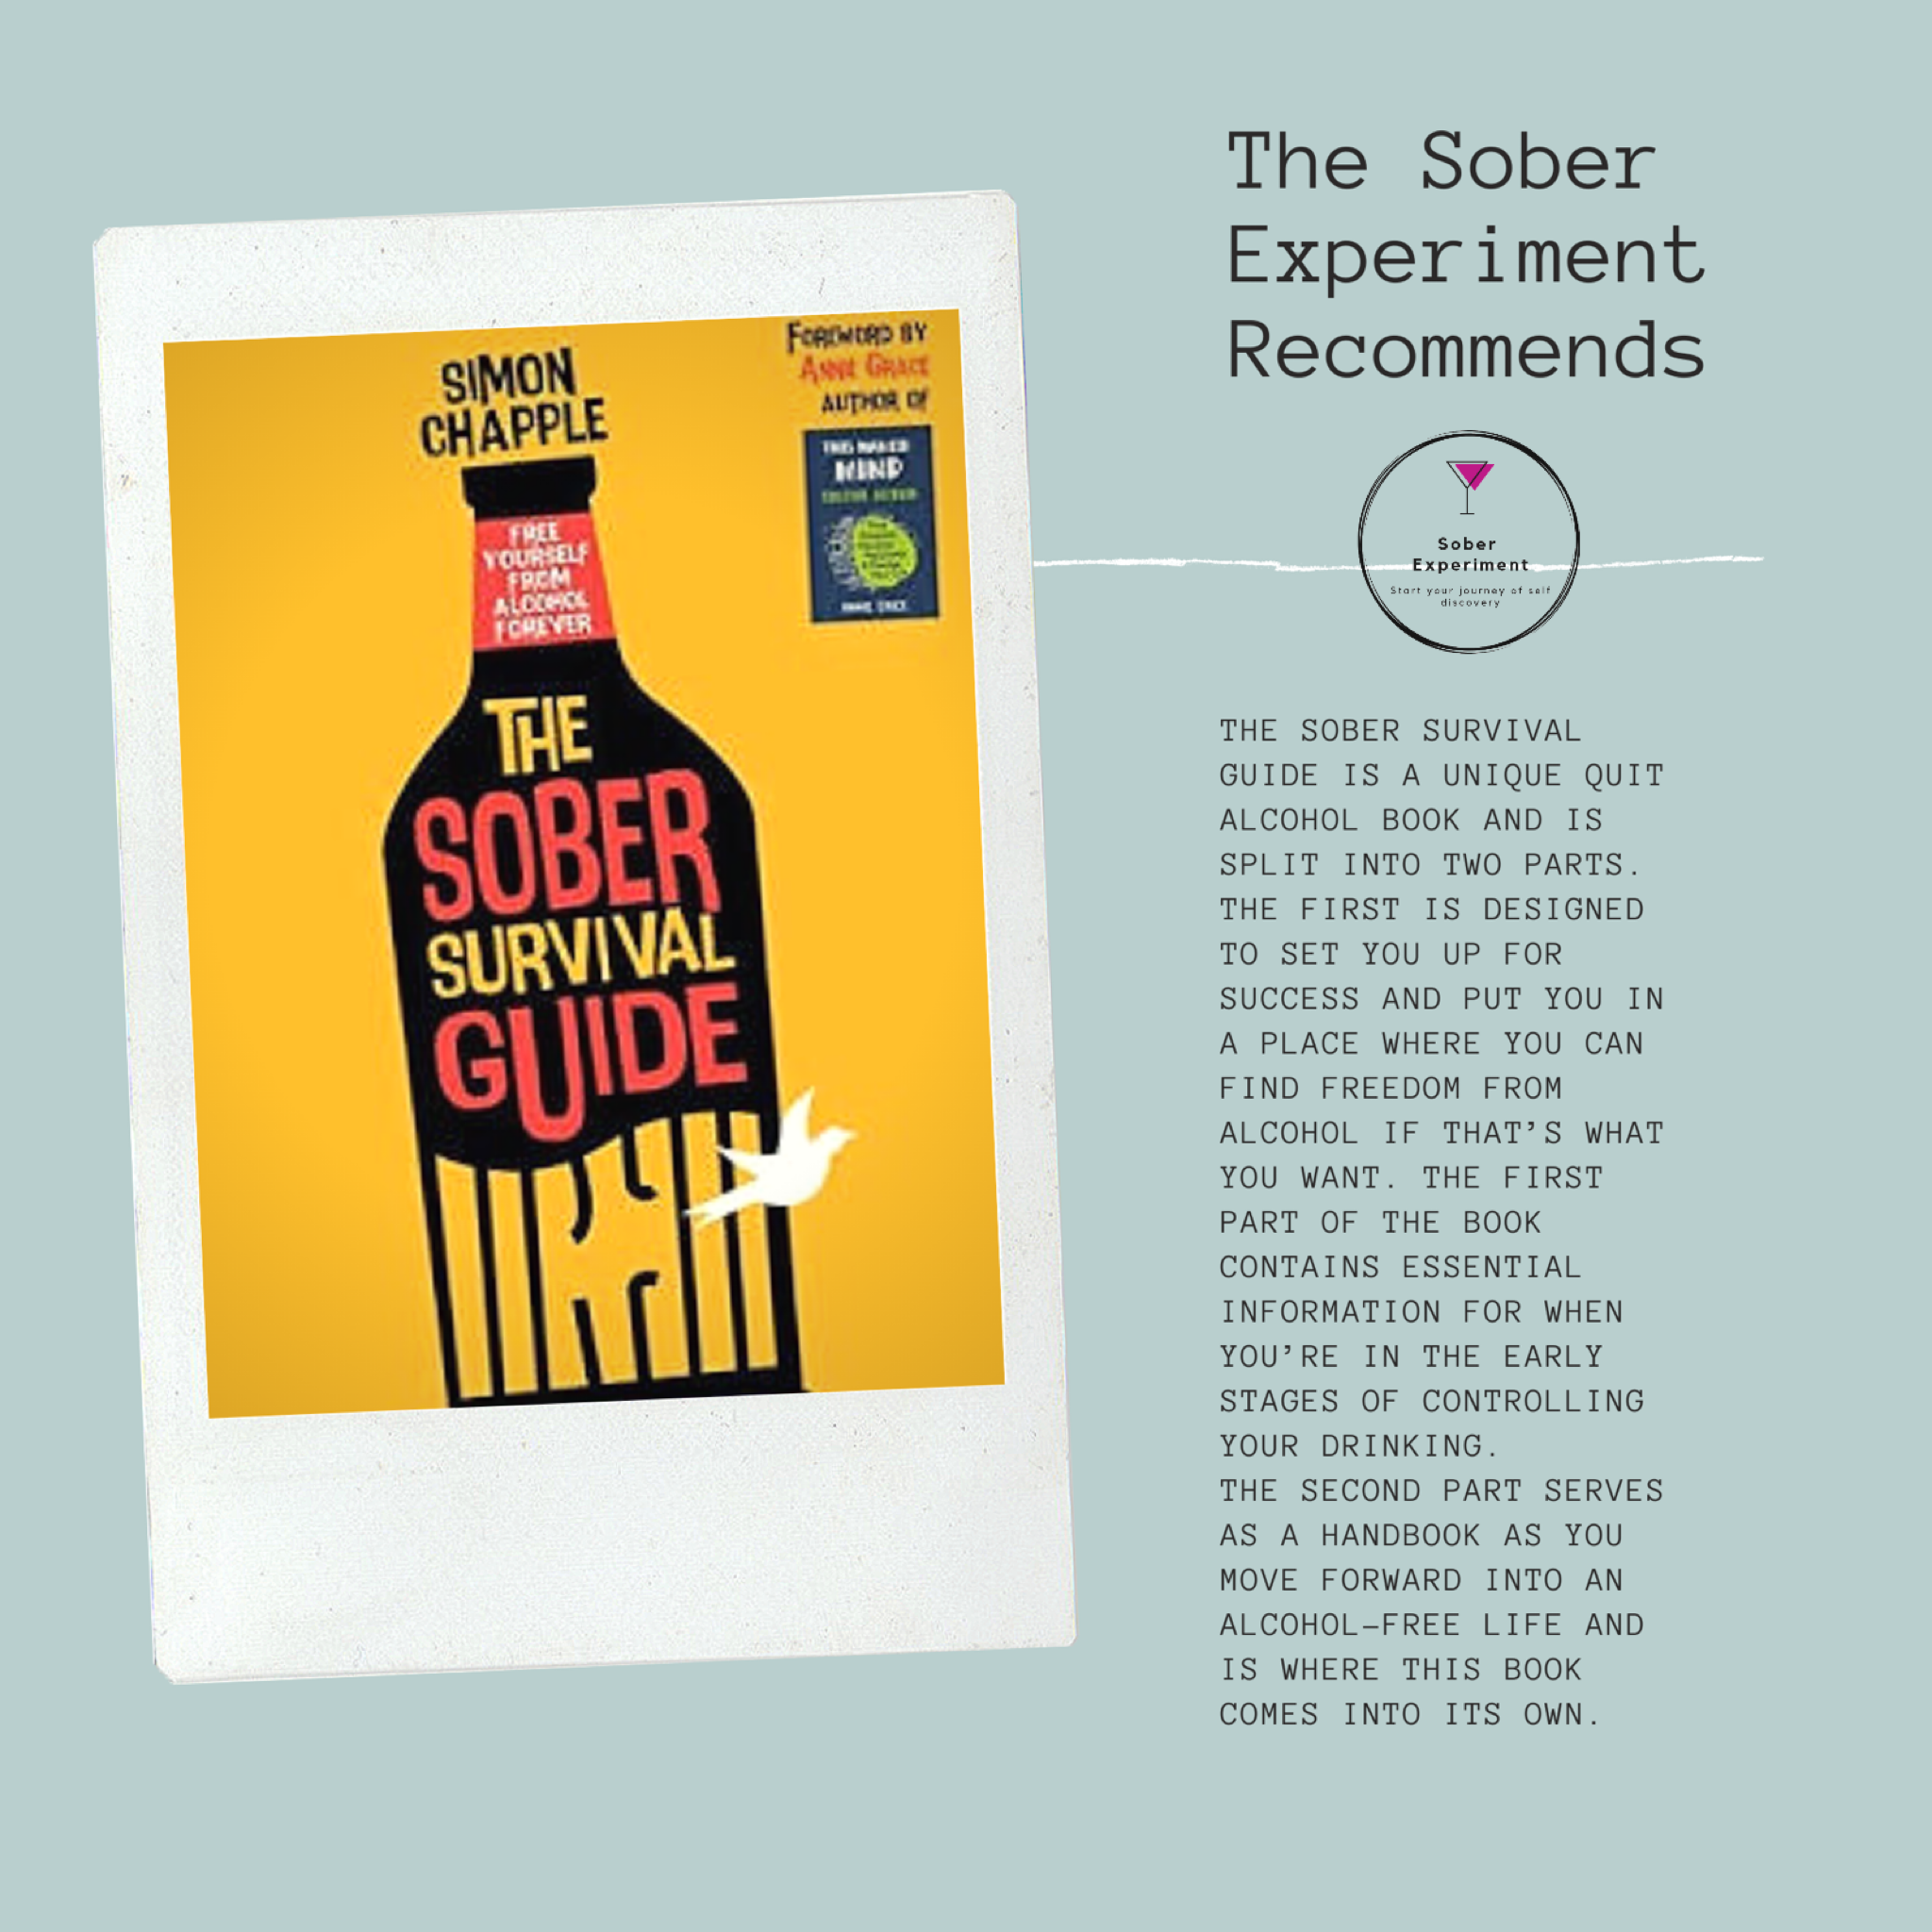 The Sober Experiment Recommends The Sober Survival Guide by Simon Chapple